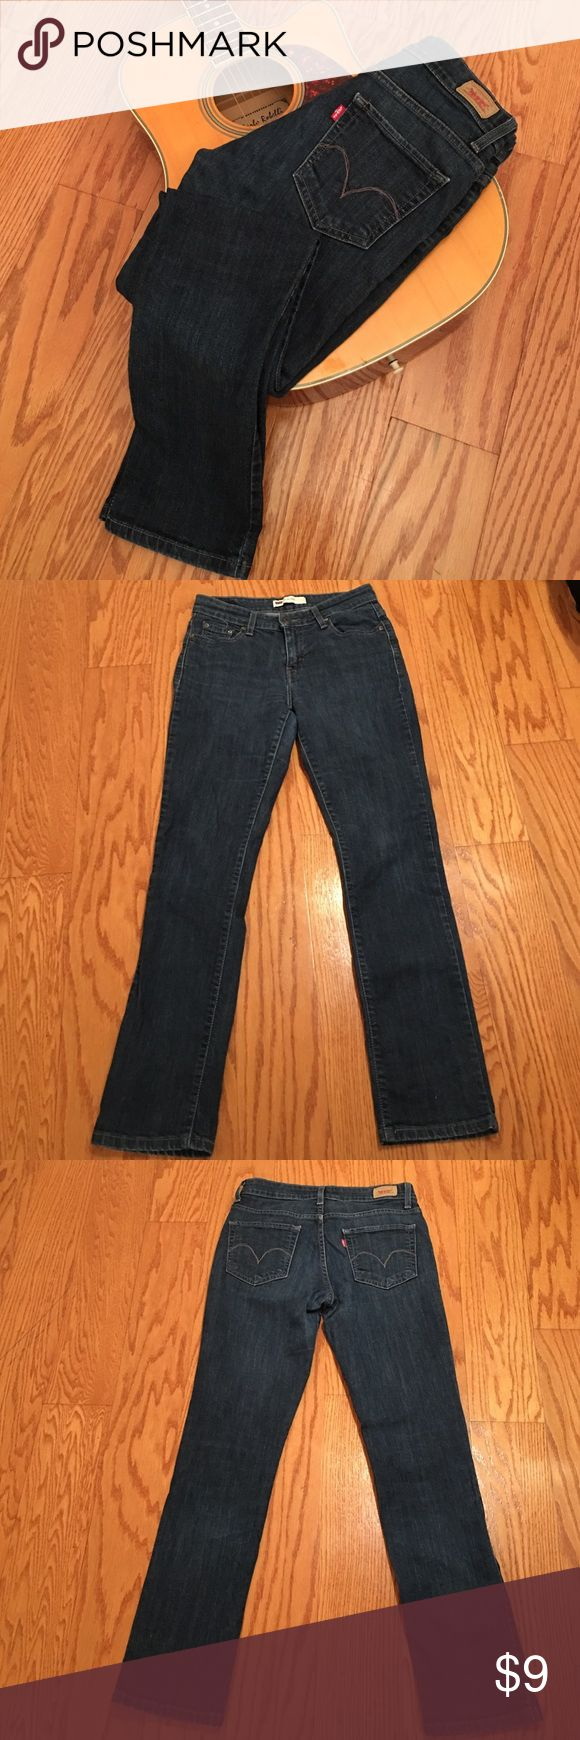 Levi's women's Mid Rise Skinny Jean A great fitting jean with classic 5 pockets styling, looks like new, non smoking environment,  99% cotton , 1% Elastane size 6M Levi's Jeans Skinny